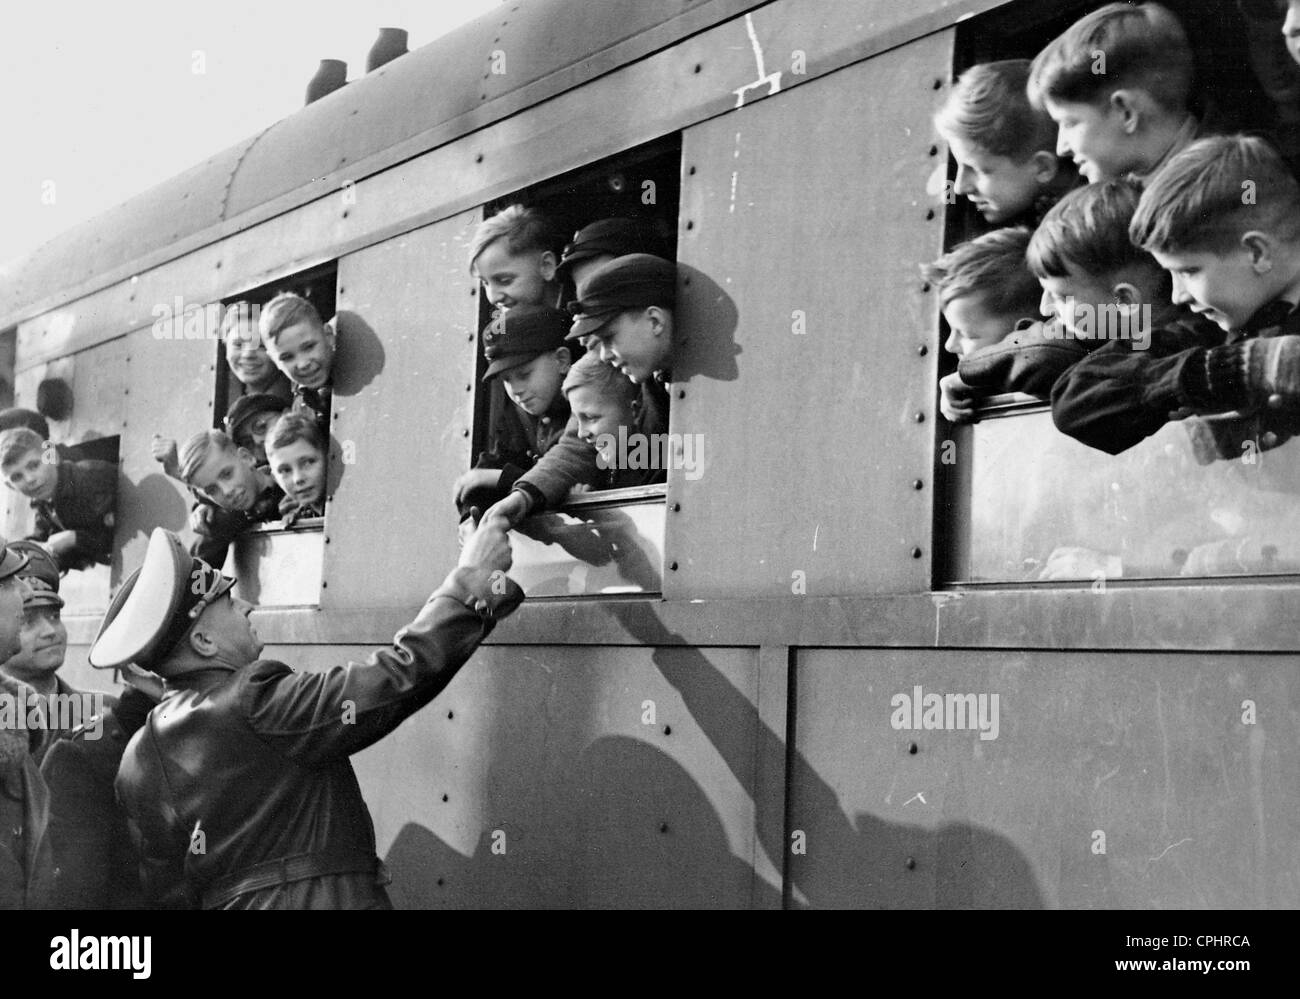 Kinderlandverschickung (sending children to the countryside) in the Government General of Poland, 1943 - Stock Image